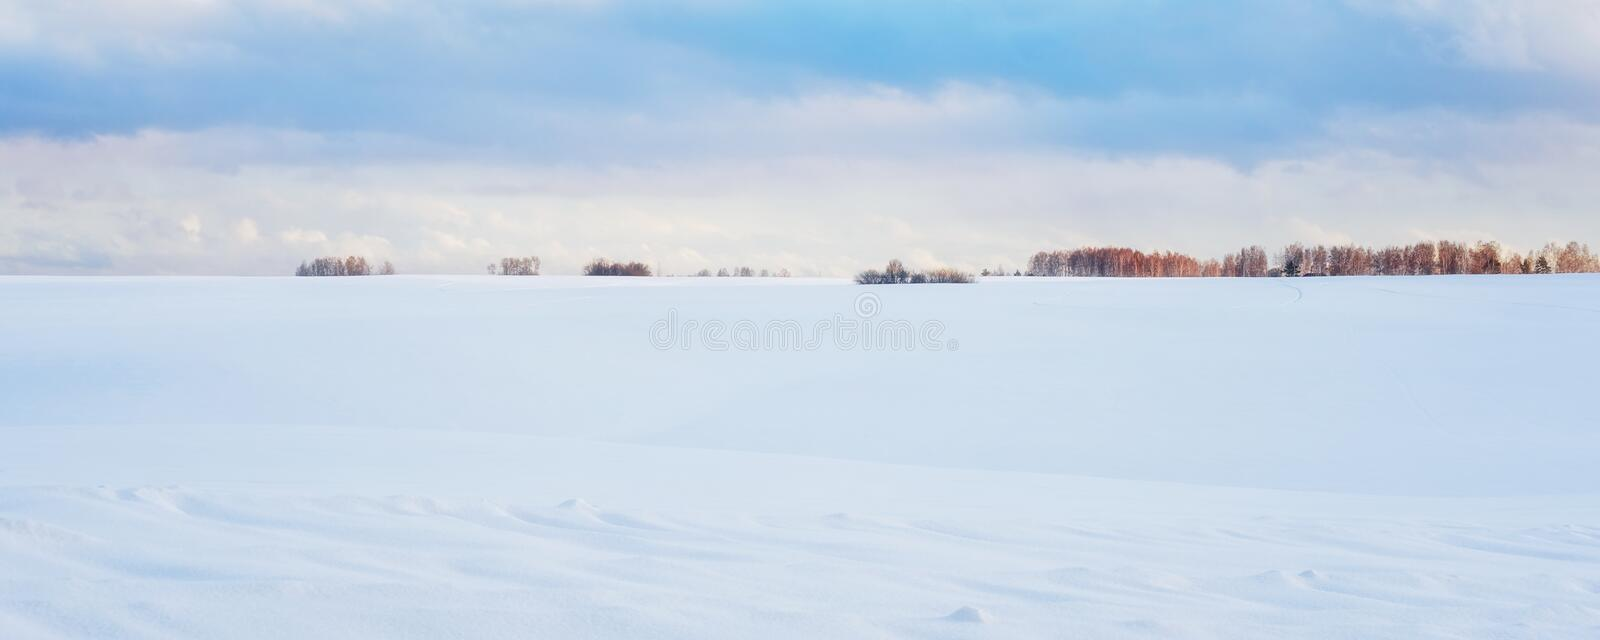 Panoramic View of Idyllic Winter Scenery: Frosty Landscape with Snowdrifts stock photography